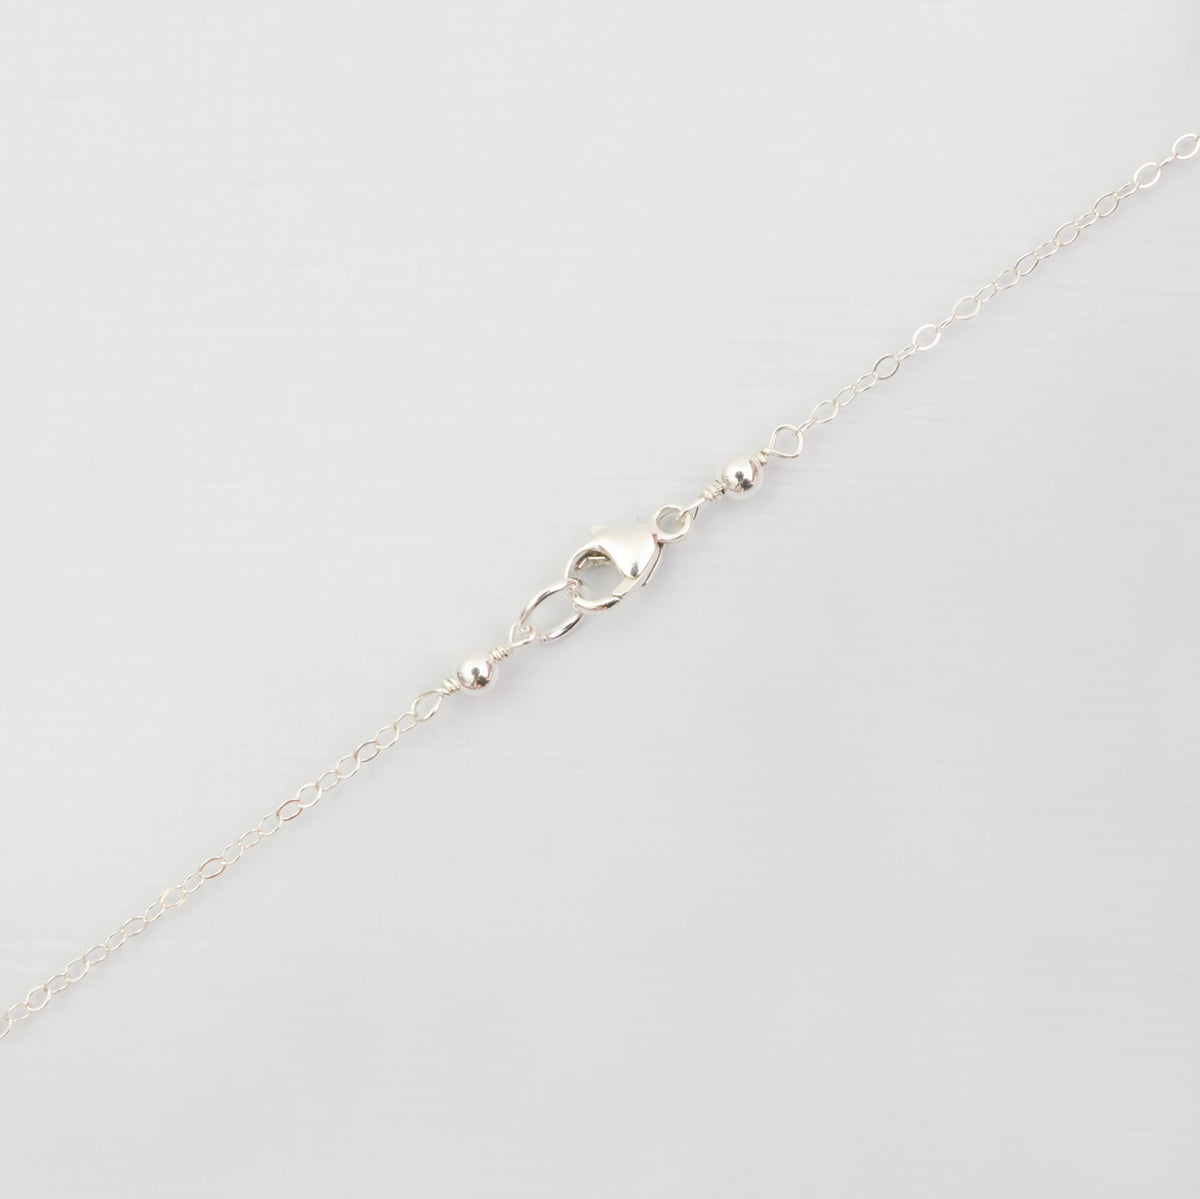 Personalised vertical bar 'initial' necklace 'Diem'